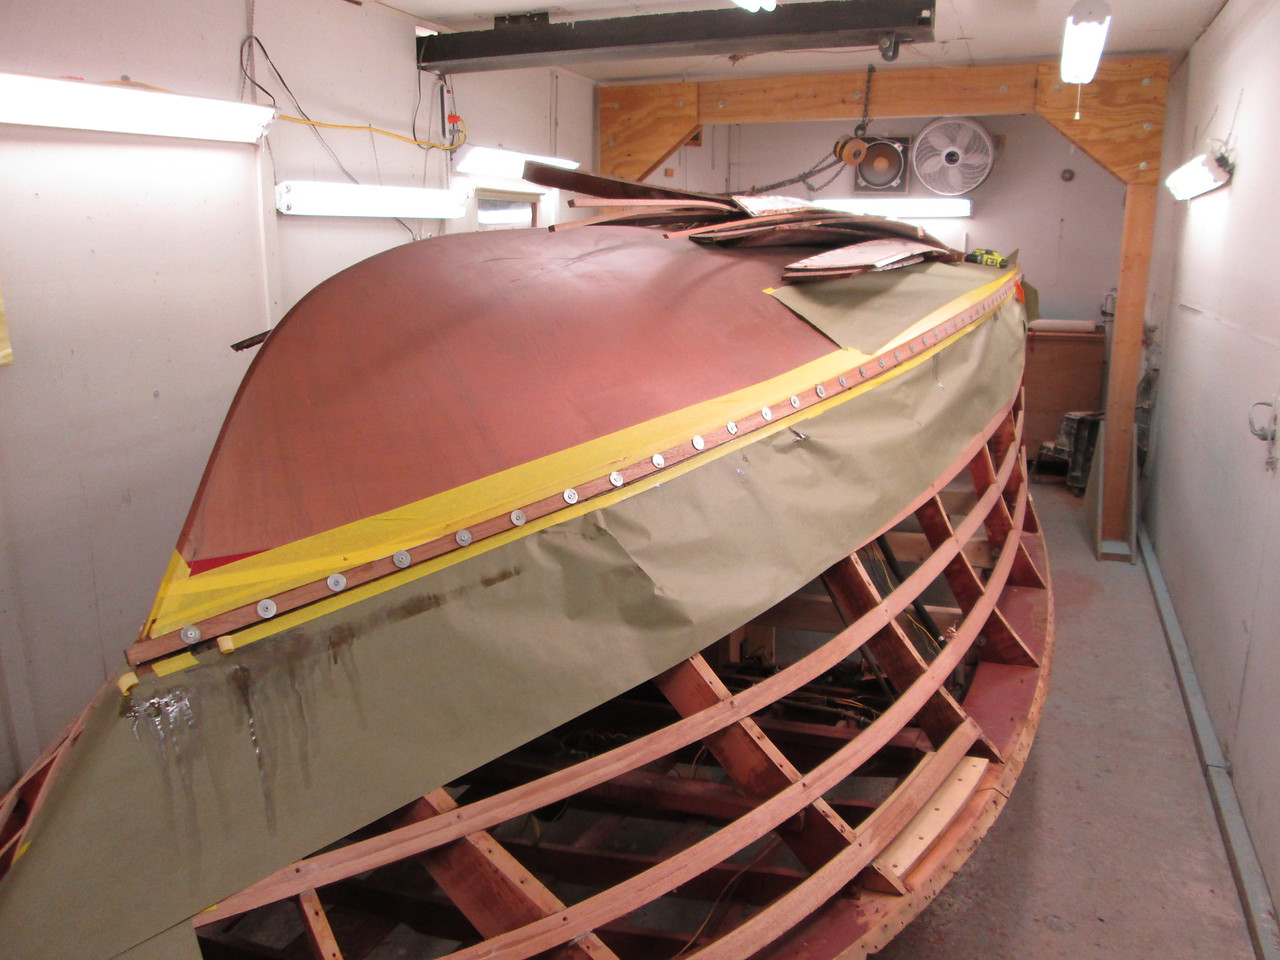 Starboard chine cap installed with temporary fasteners.